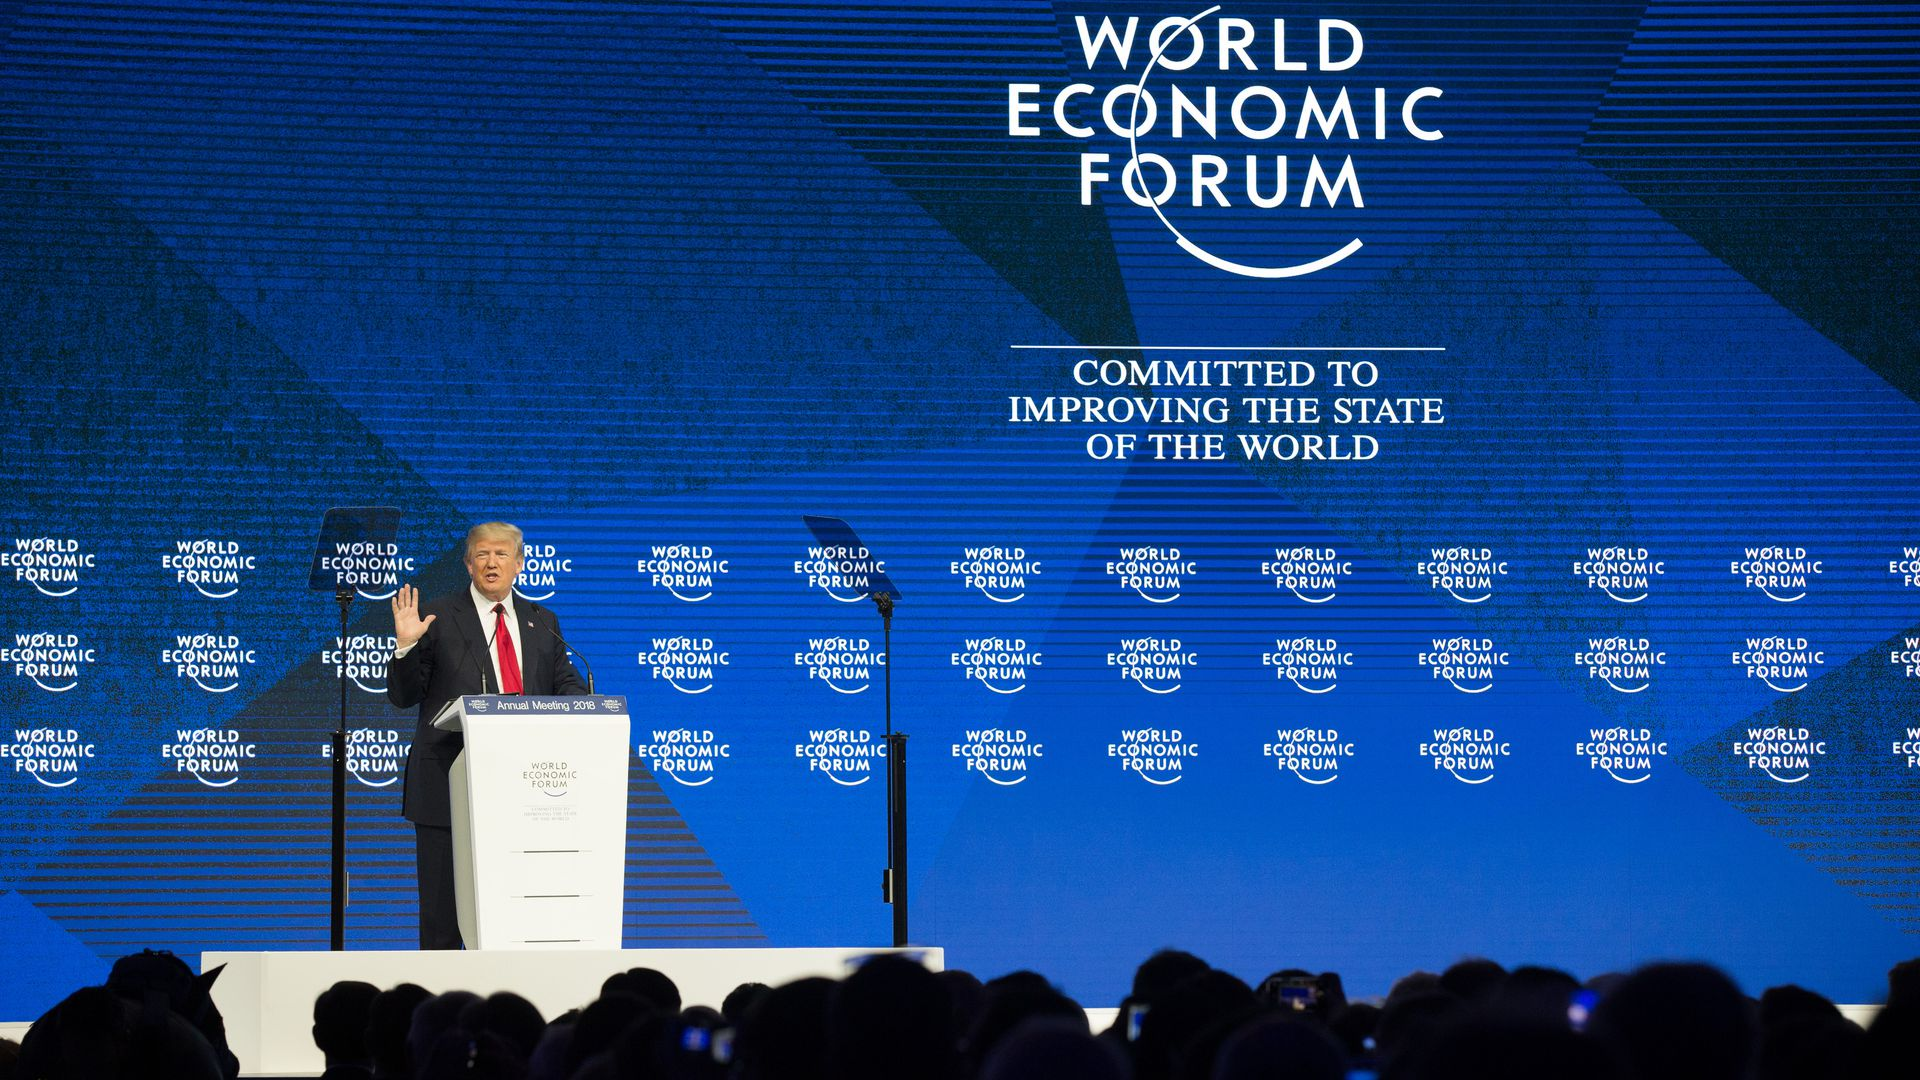 Trump speaking at World Economic Forum